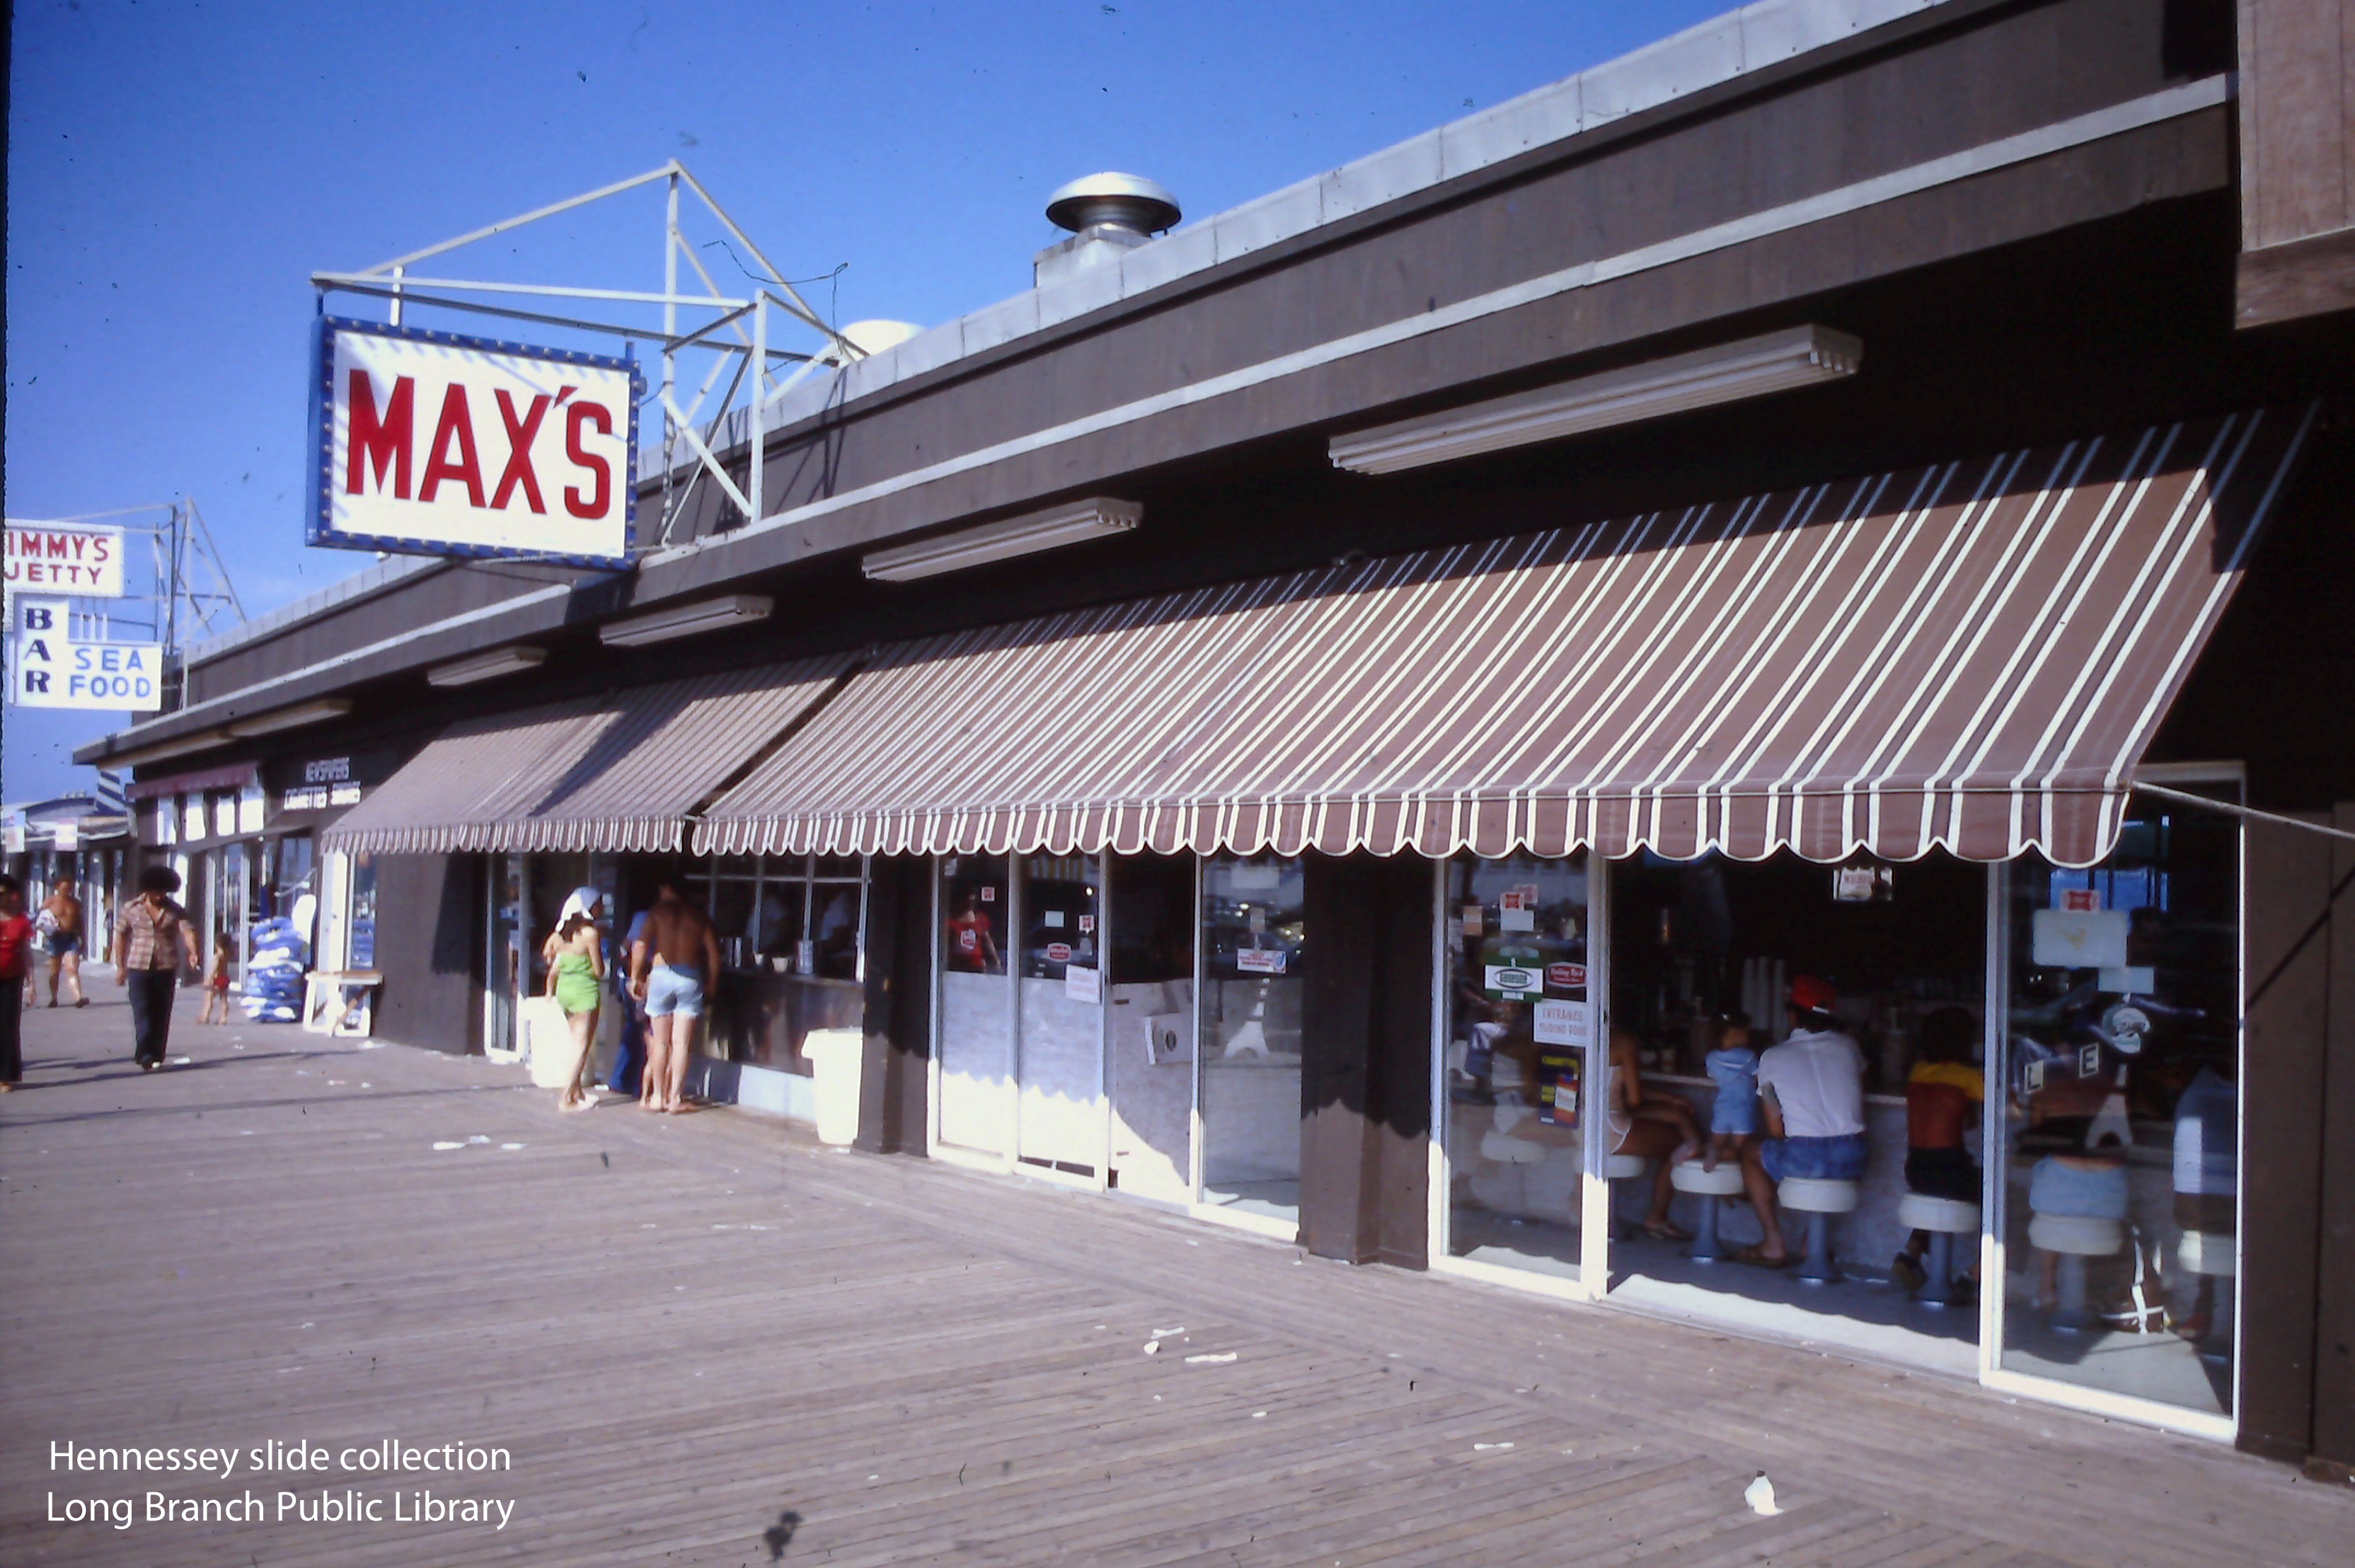 Max_s Hot Dog stand on the boardwalk